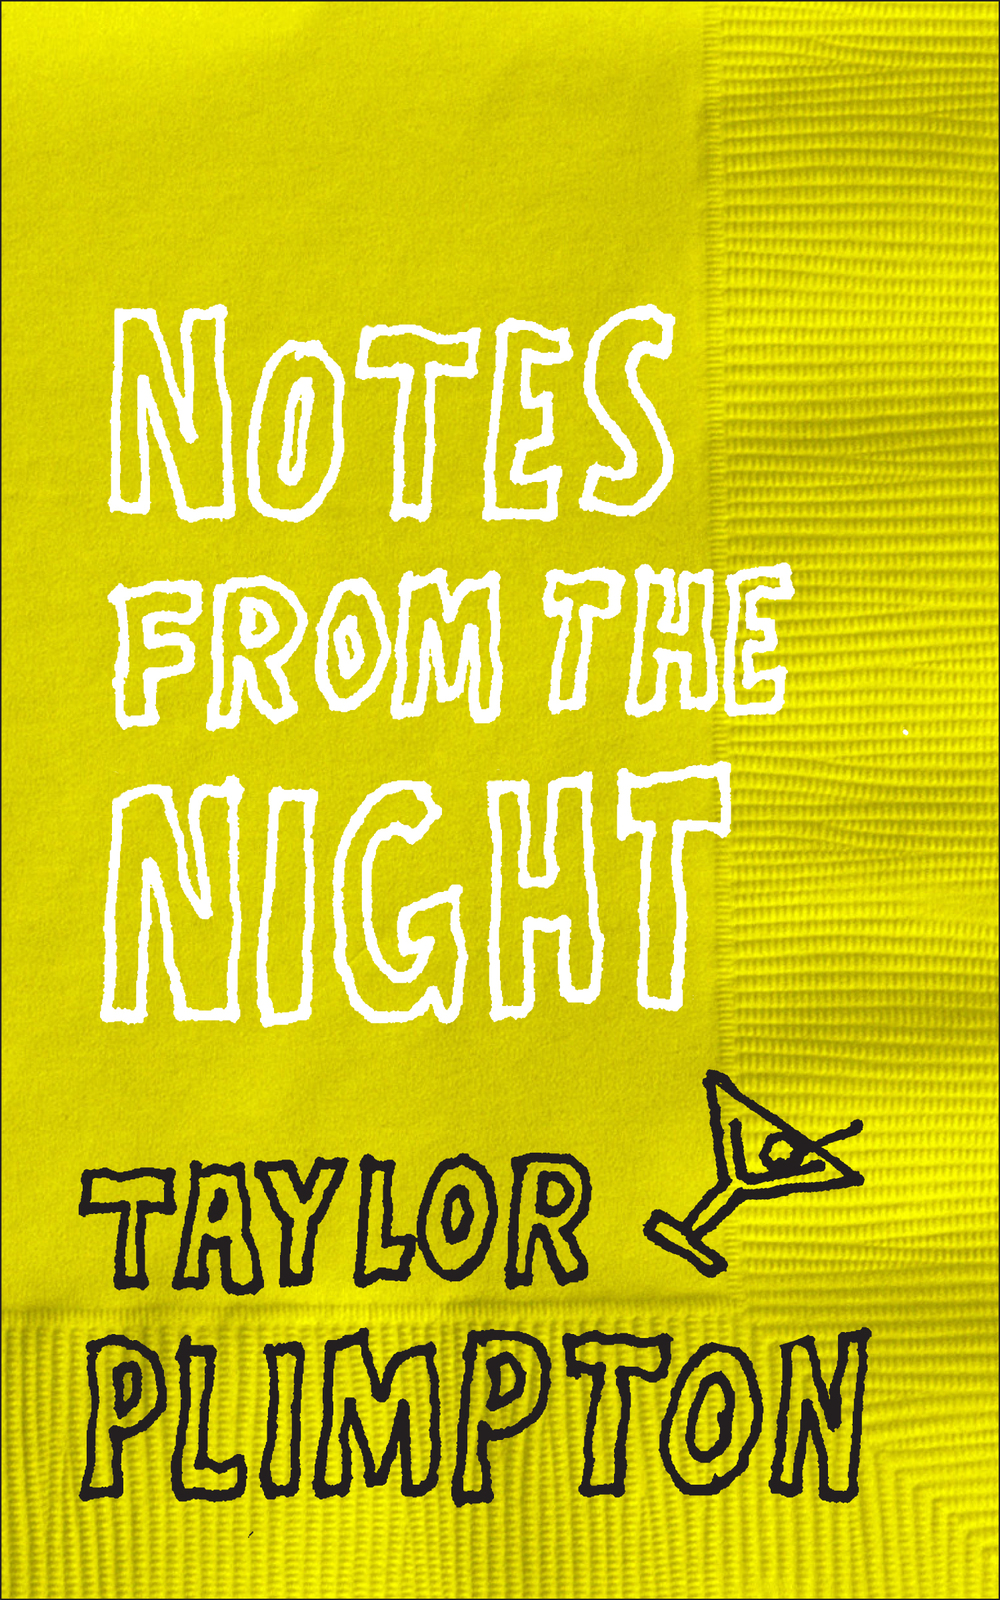 NOTES-FROM-THE-NIGHT-comp5-ss6.jpg